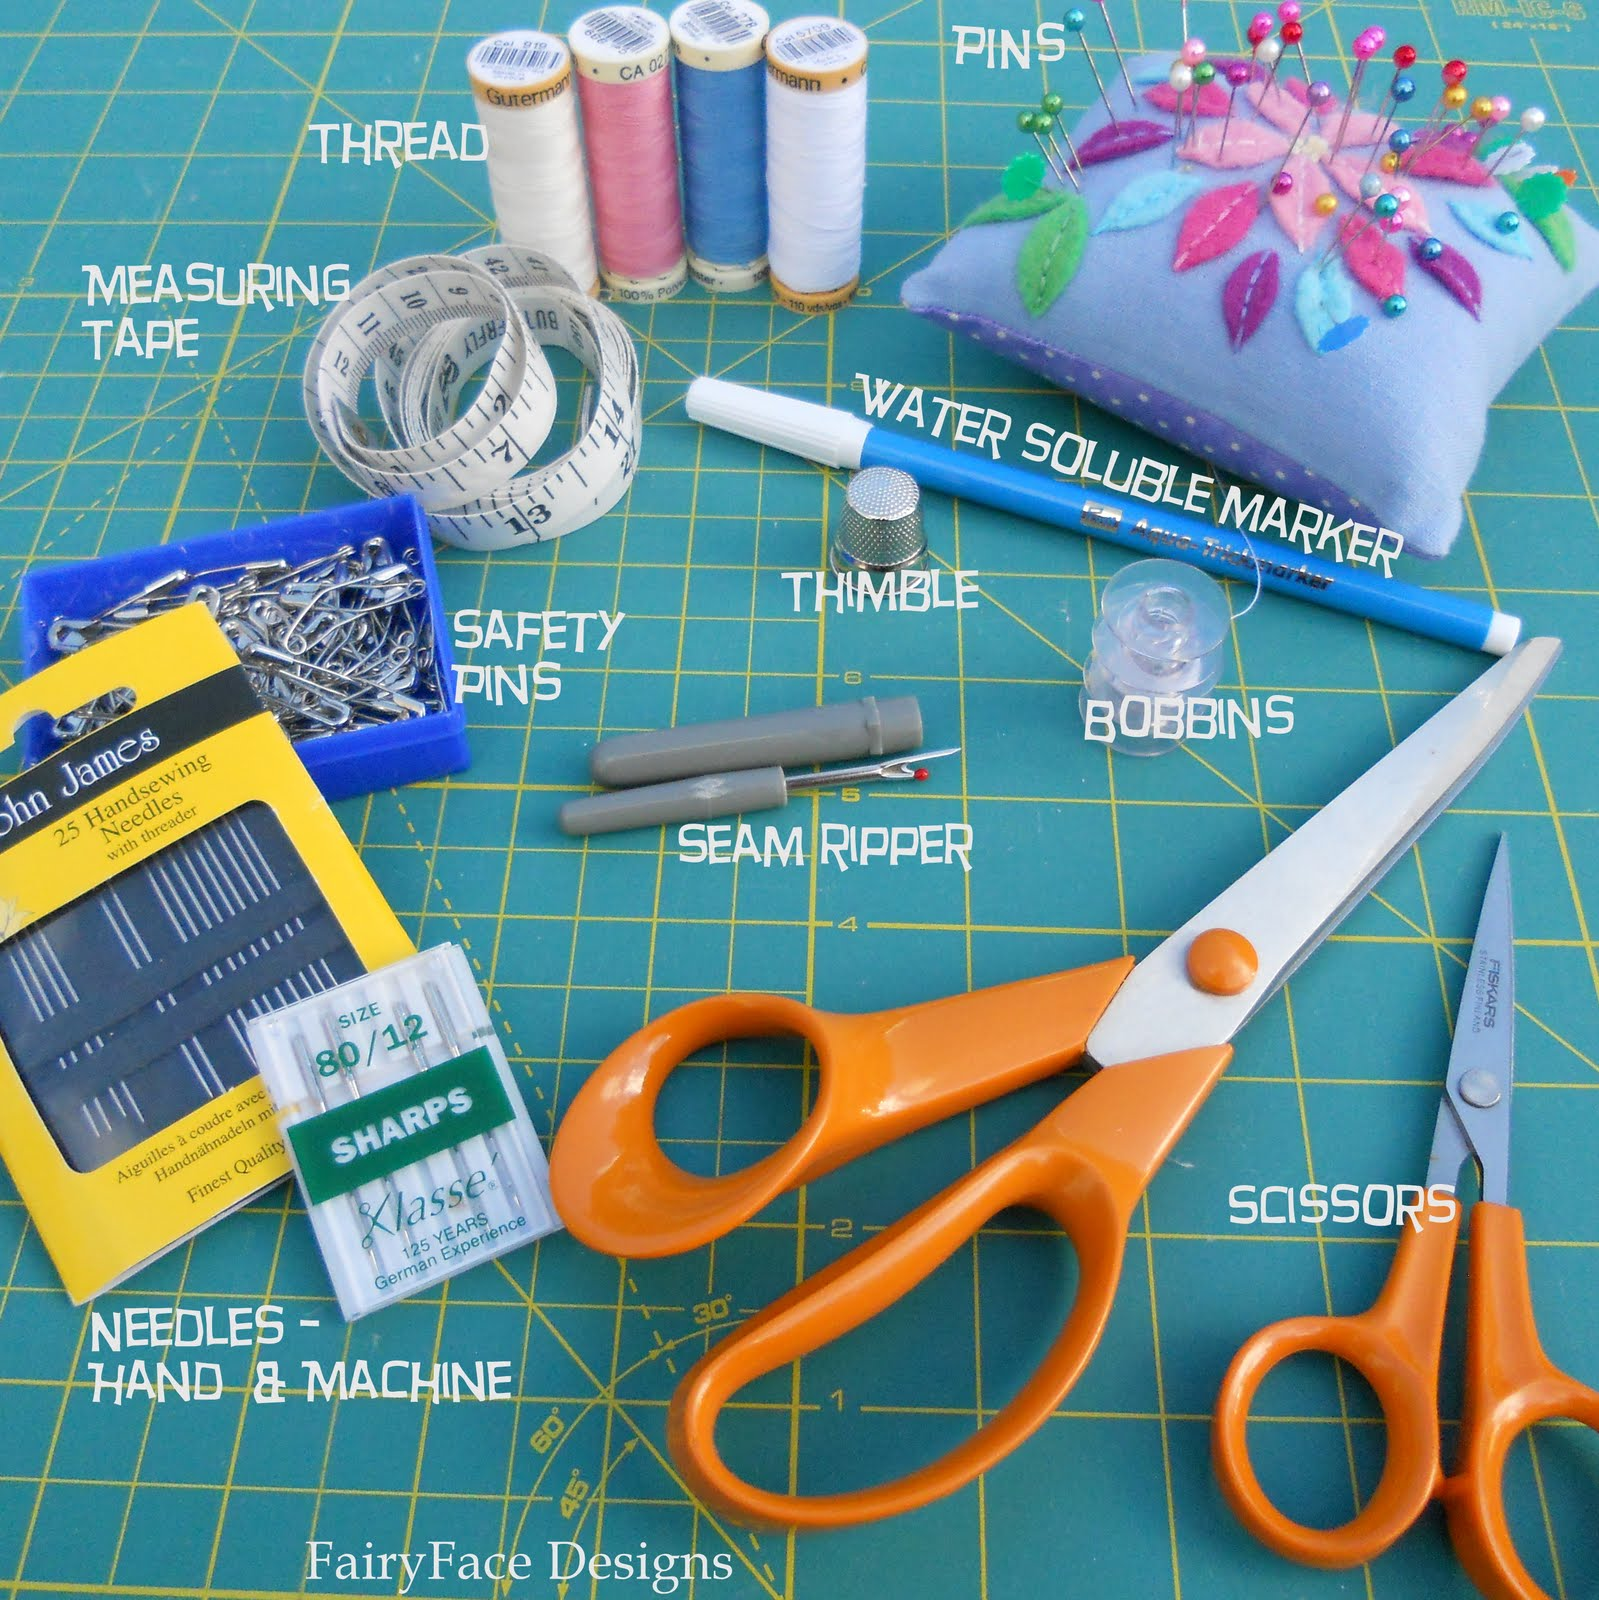 Sewing Supplies: List Of Basic Sewing Supplies